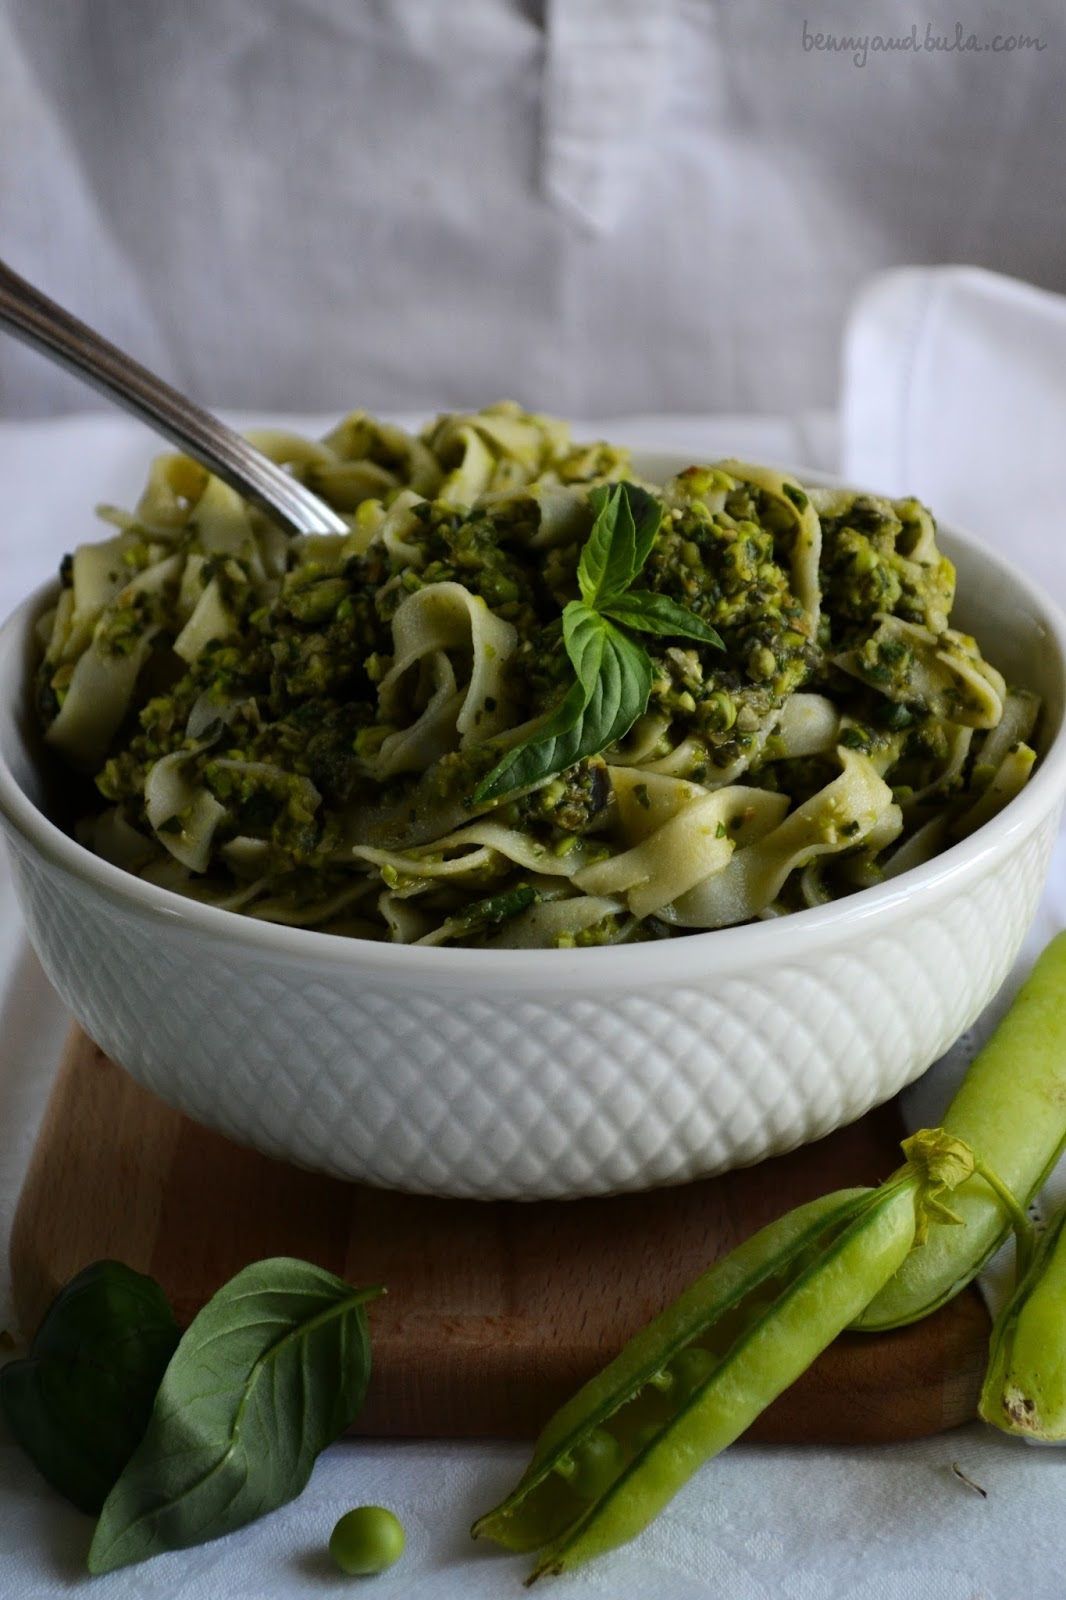 tagliatelle con pesto di piselli crudi/ pasta with raw pea pesto